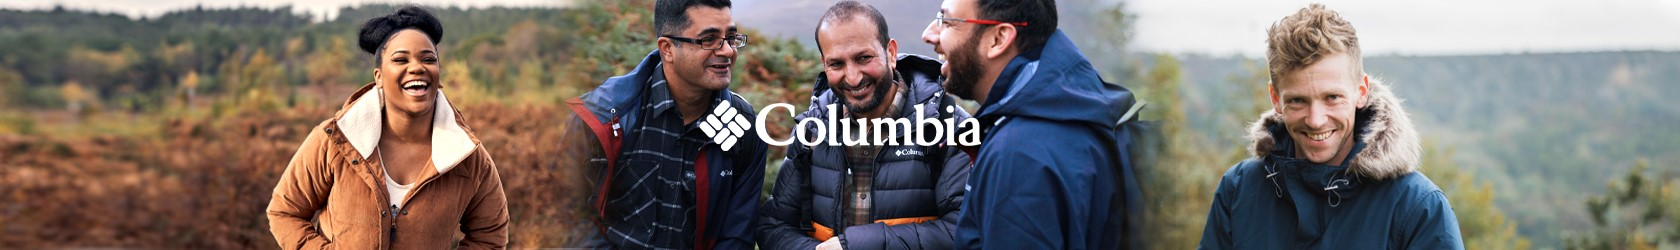 Different people enjoying outdoors, wearing Columbia gear